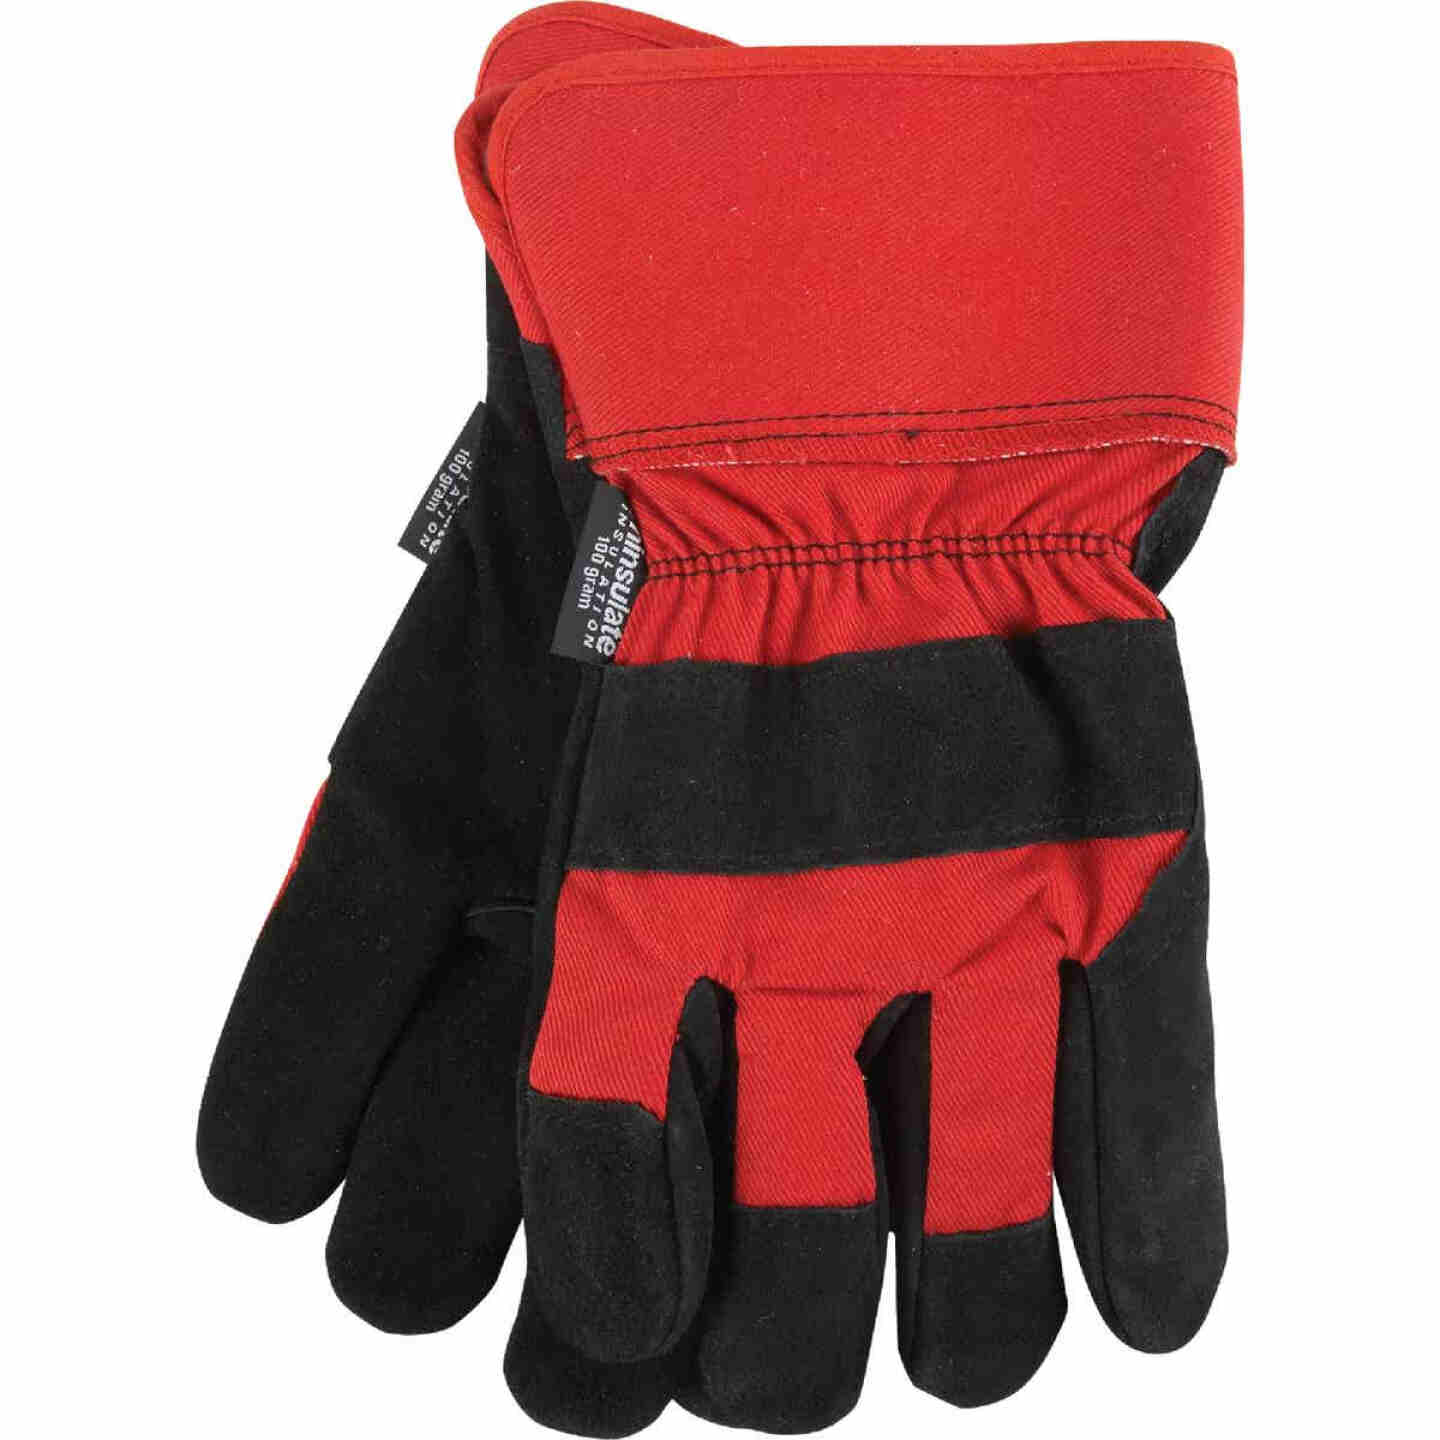 Do it Best Men's Large Leather Winter Work Glove Image 1